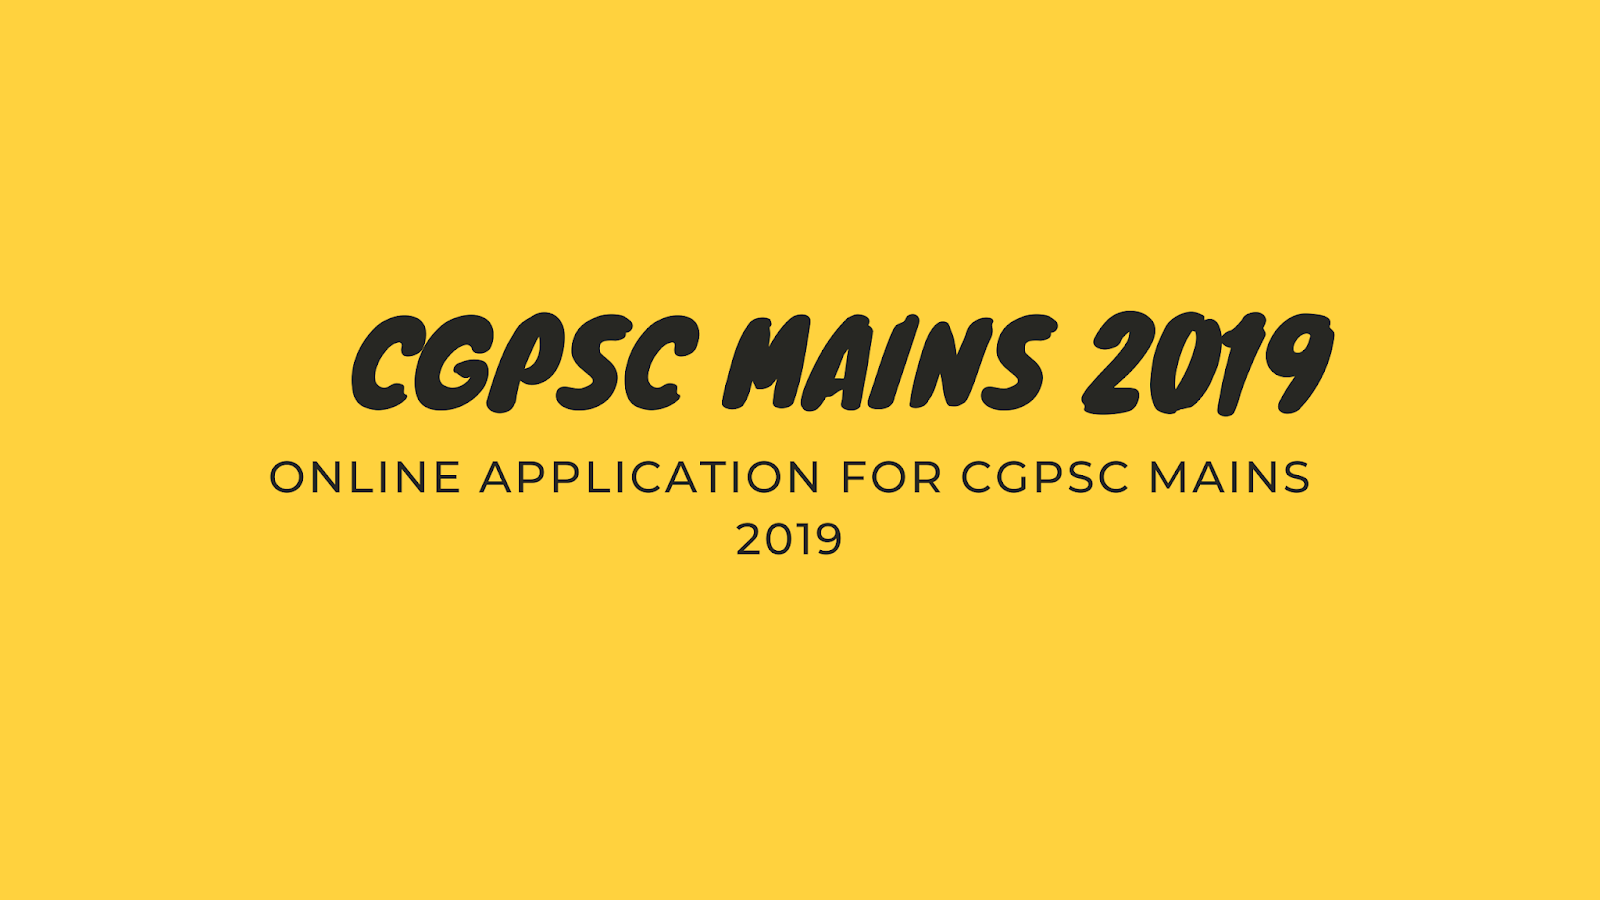 CGPSC MAINS ONLINE FORM 2019 | APPLY ONLINE FOR CGPSC MAINS EXAM